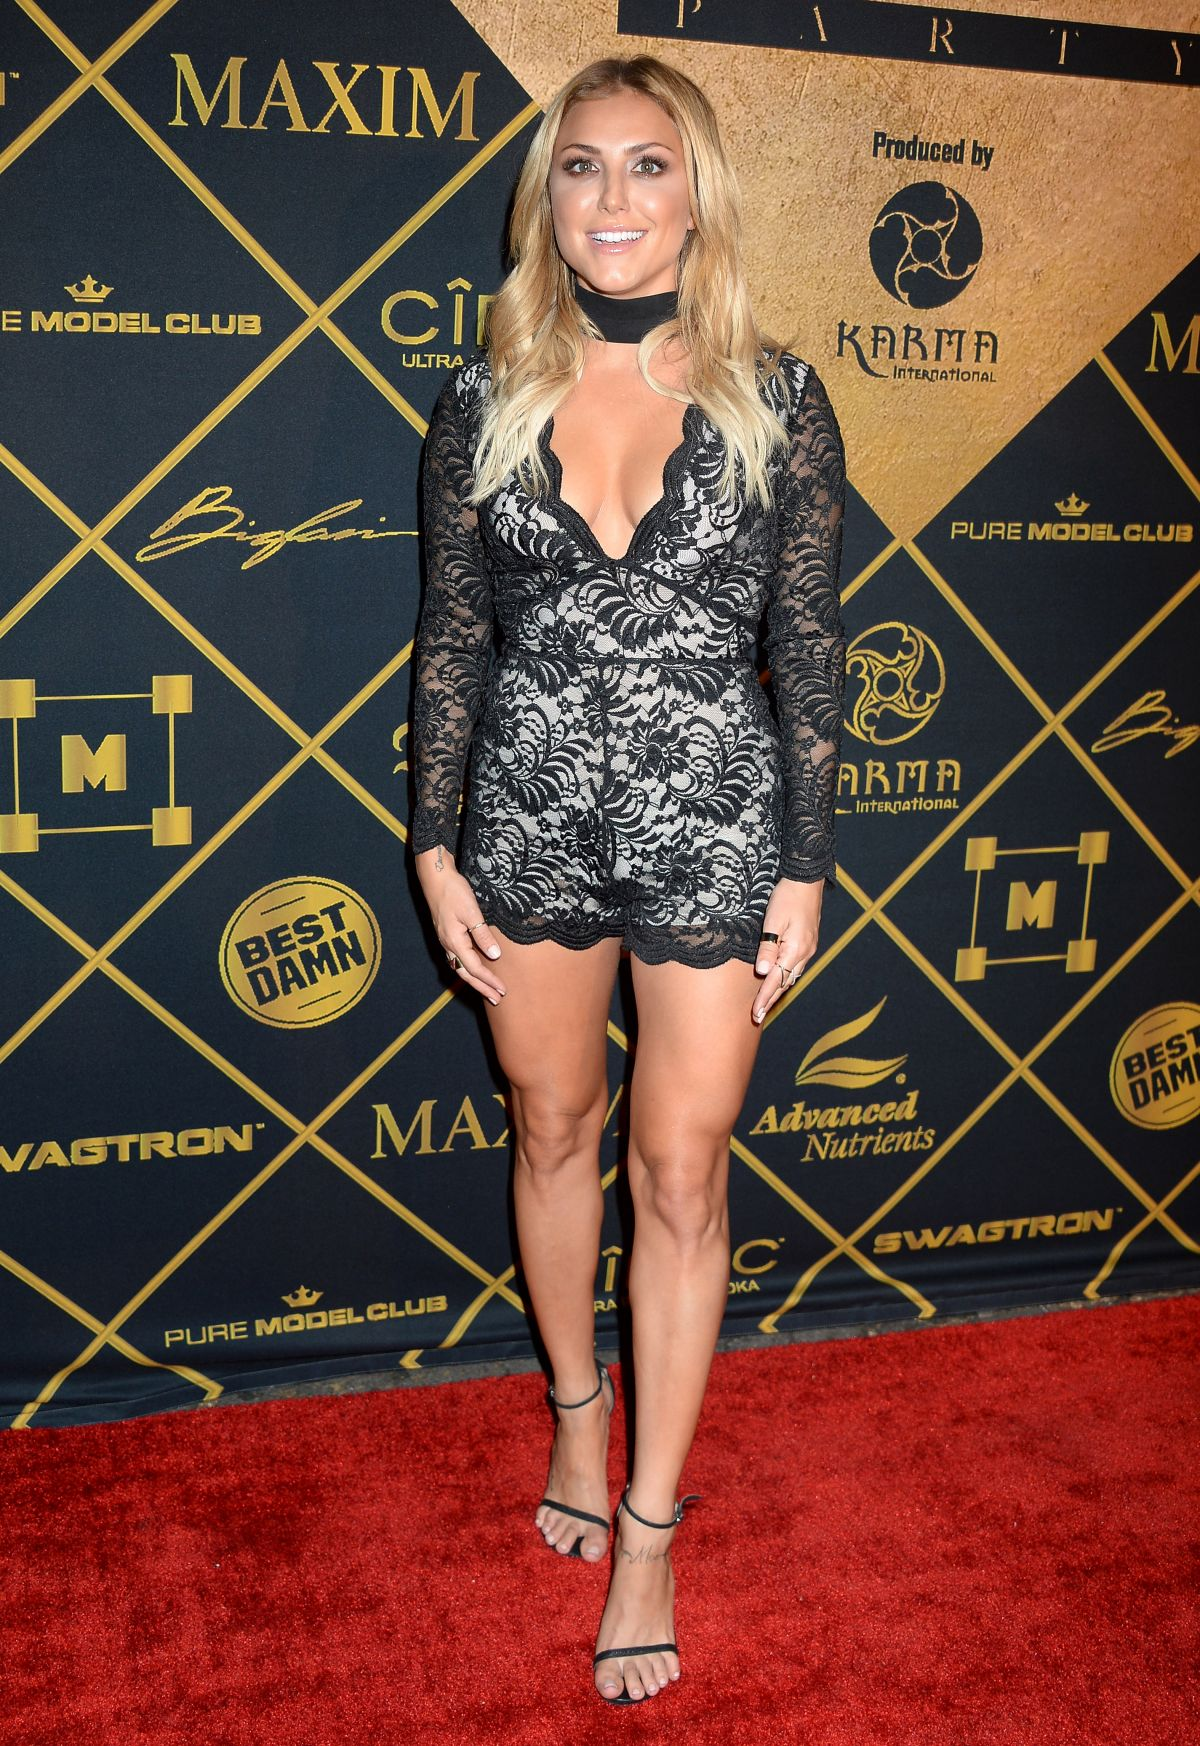 Actress and dancer Cassie Scerbo, 27, at 2016 Maxim Hot 100 Party in Los Angeles